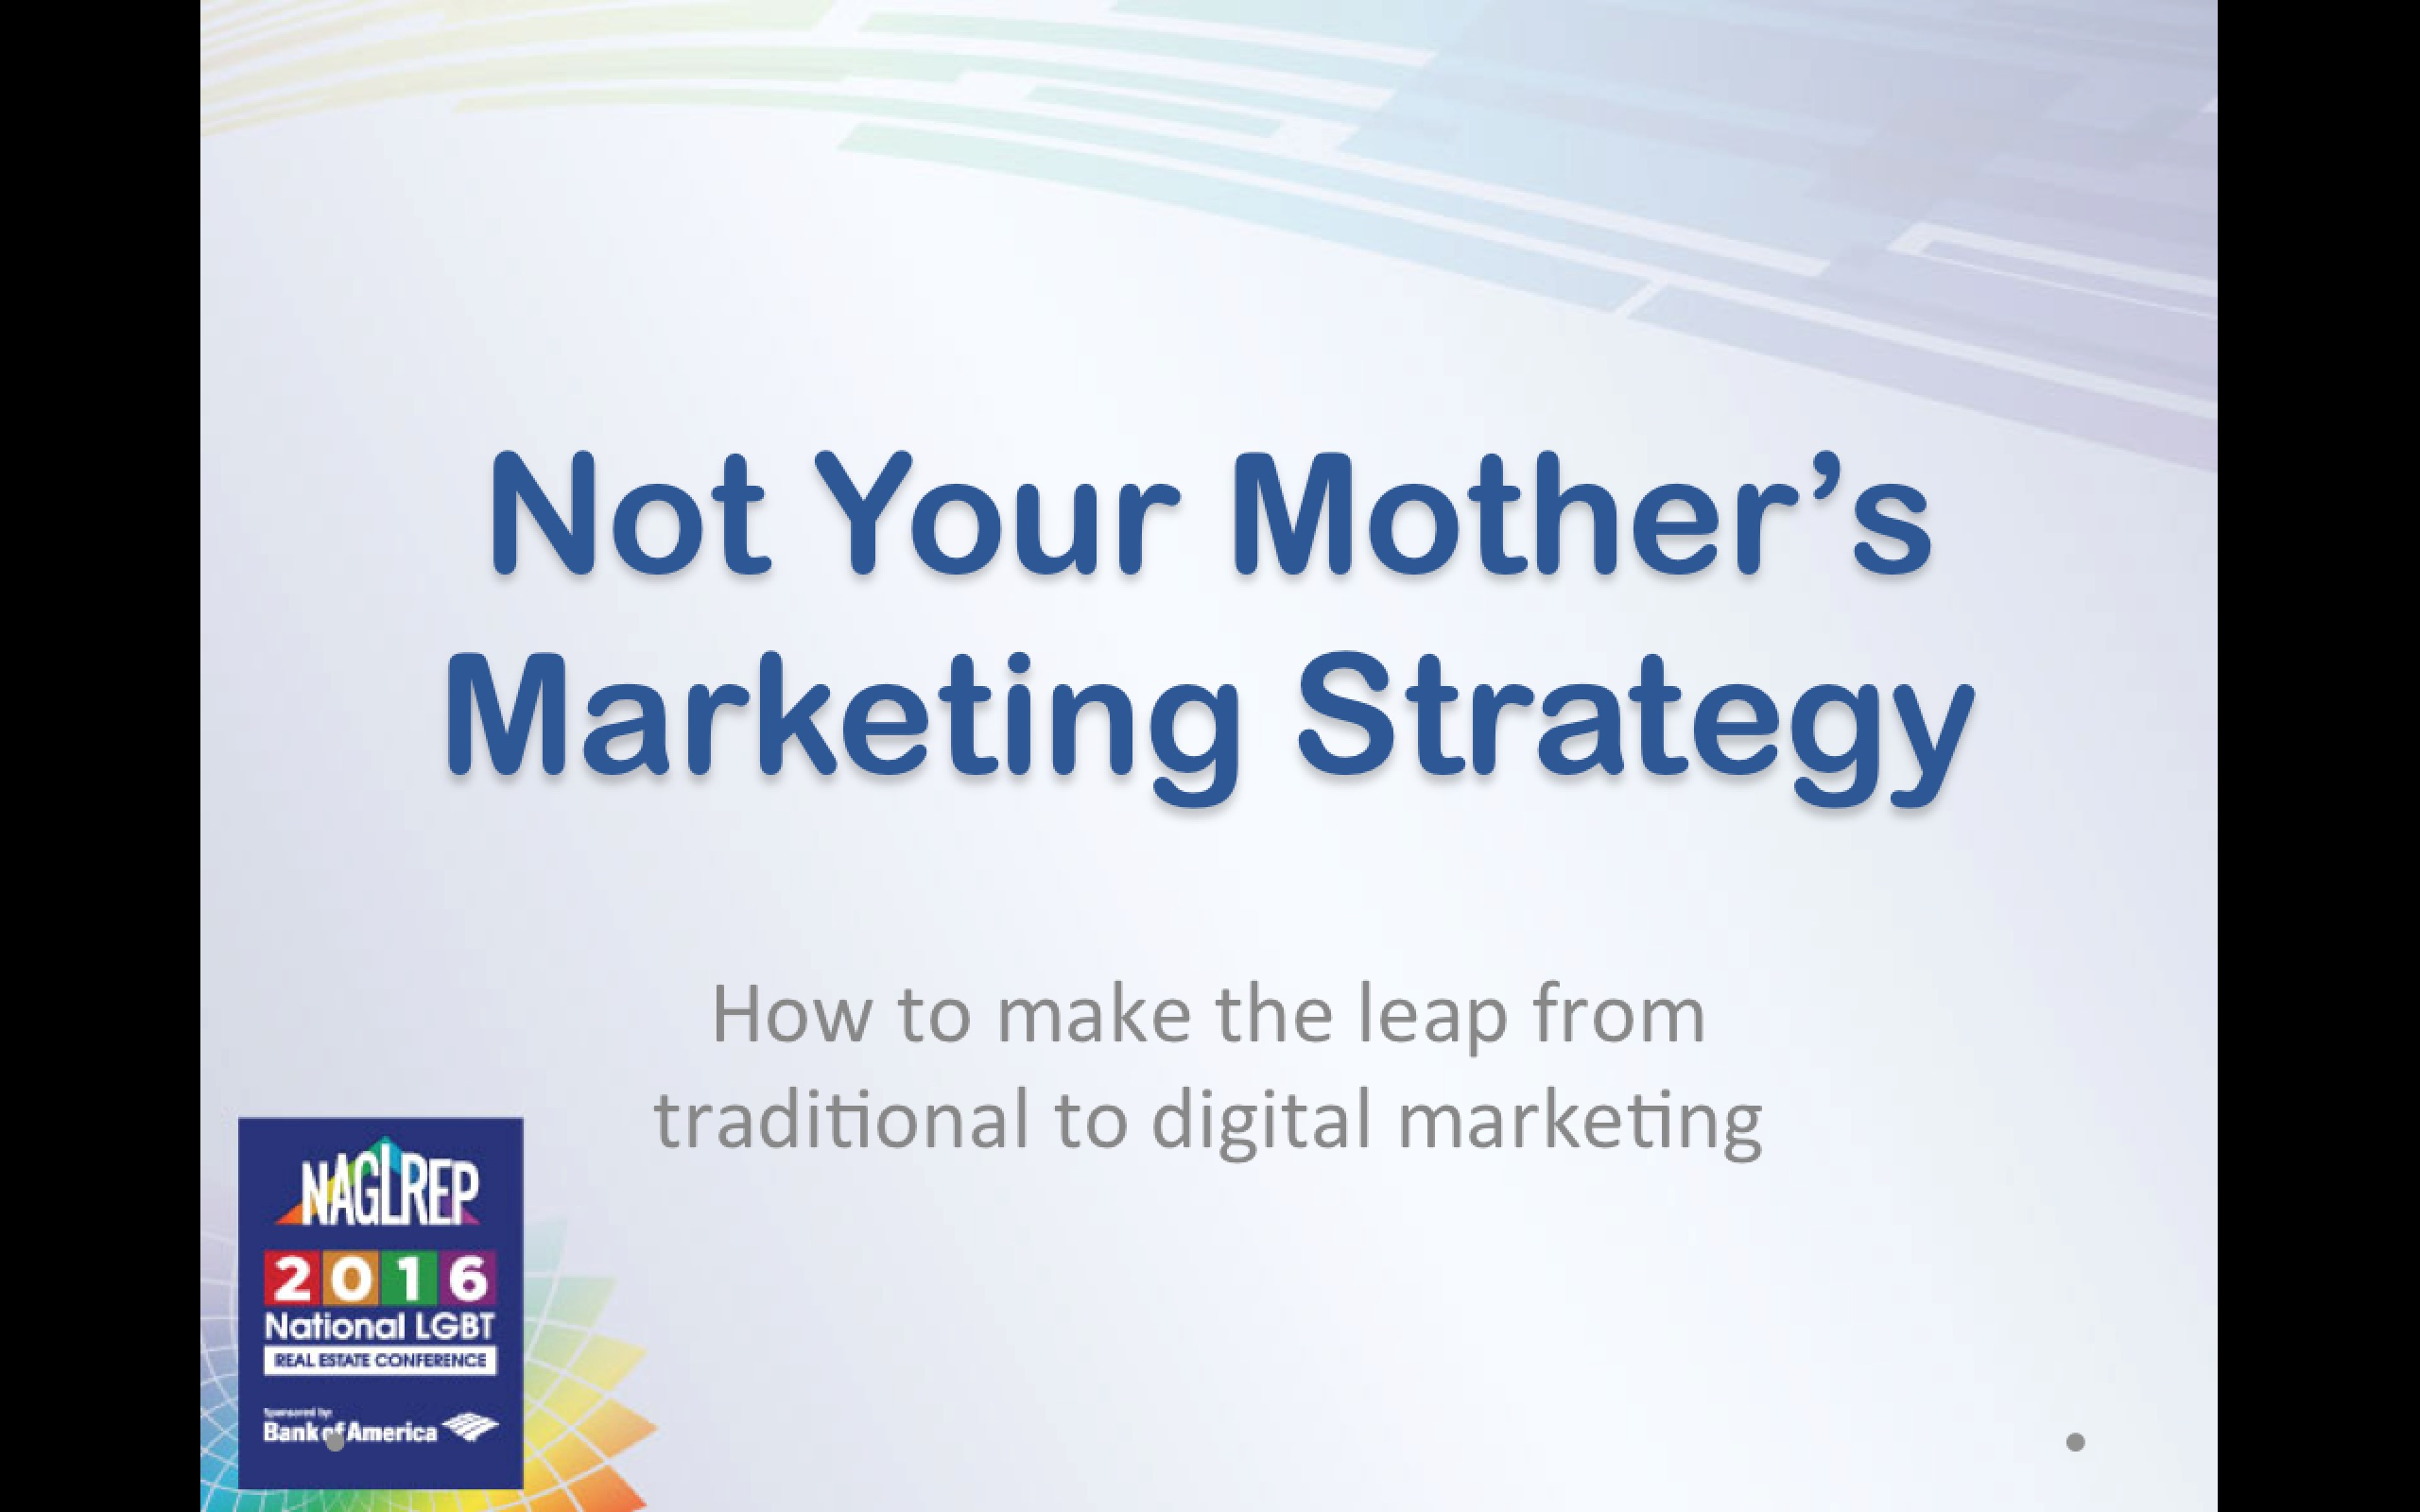 Not Your Mother's Marketing Strategy